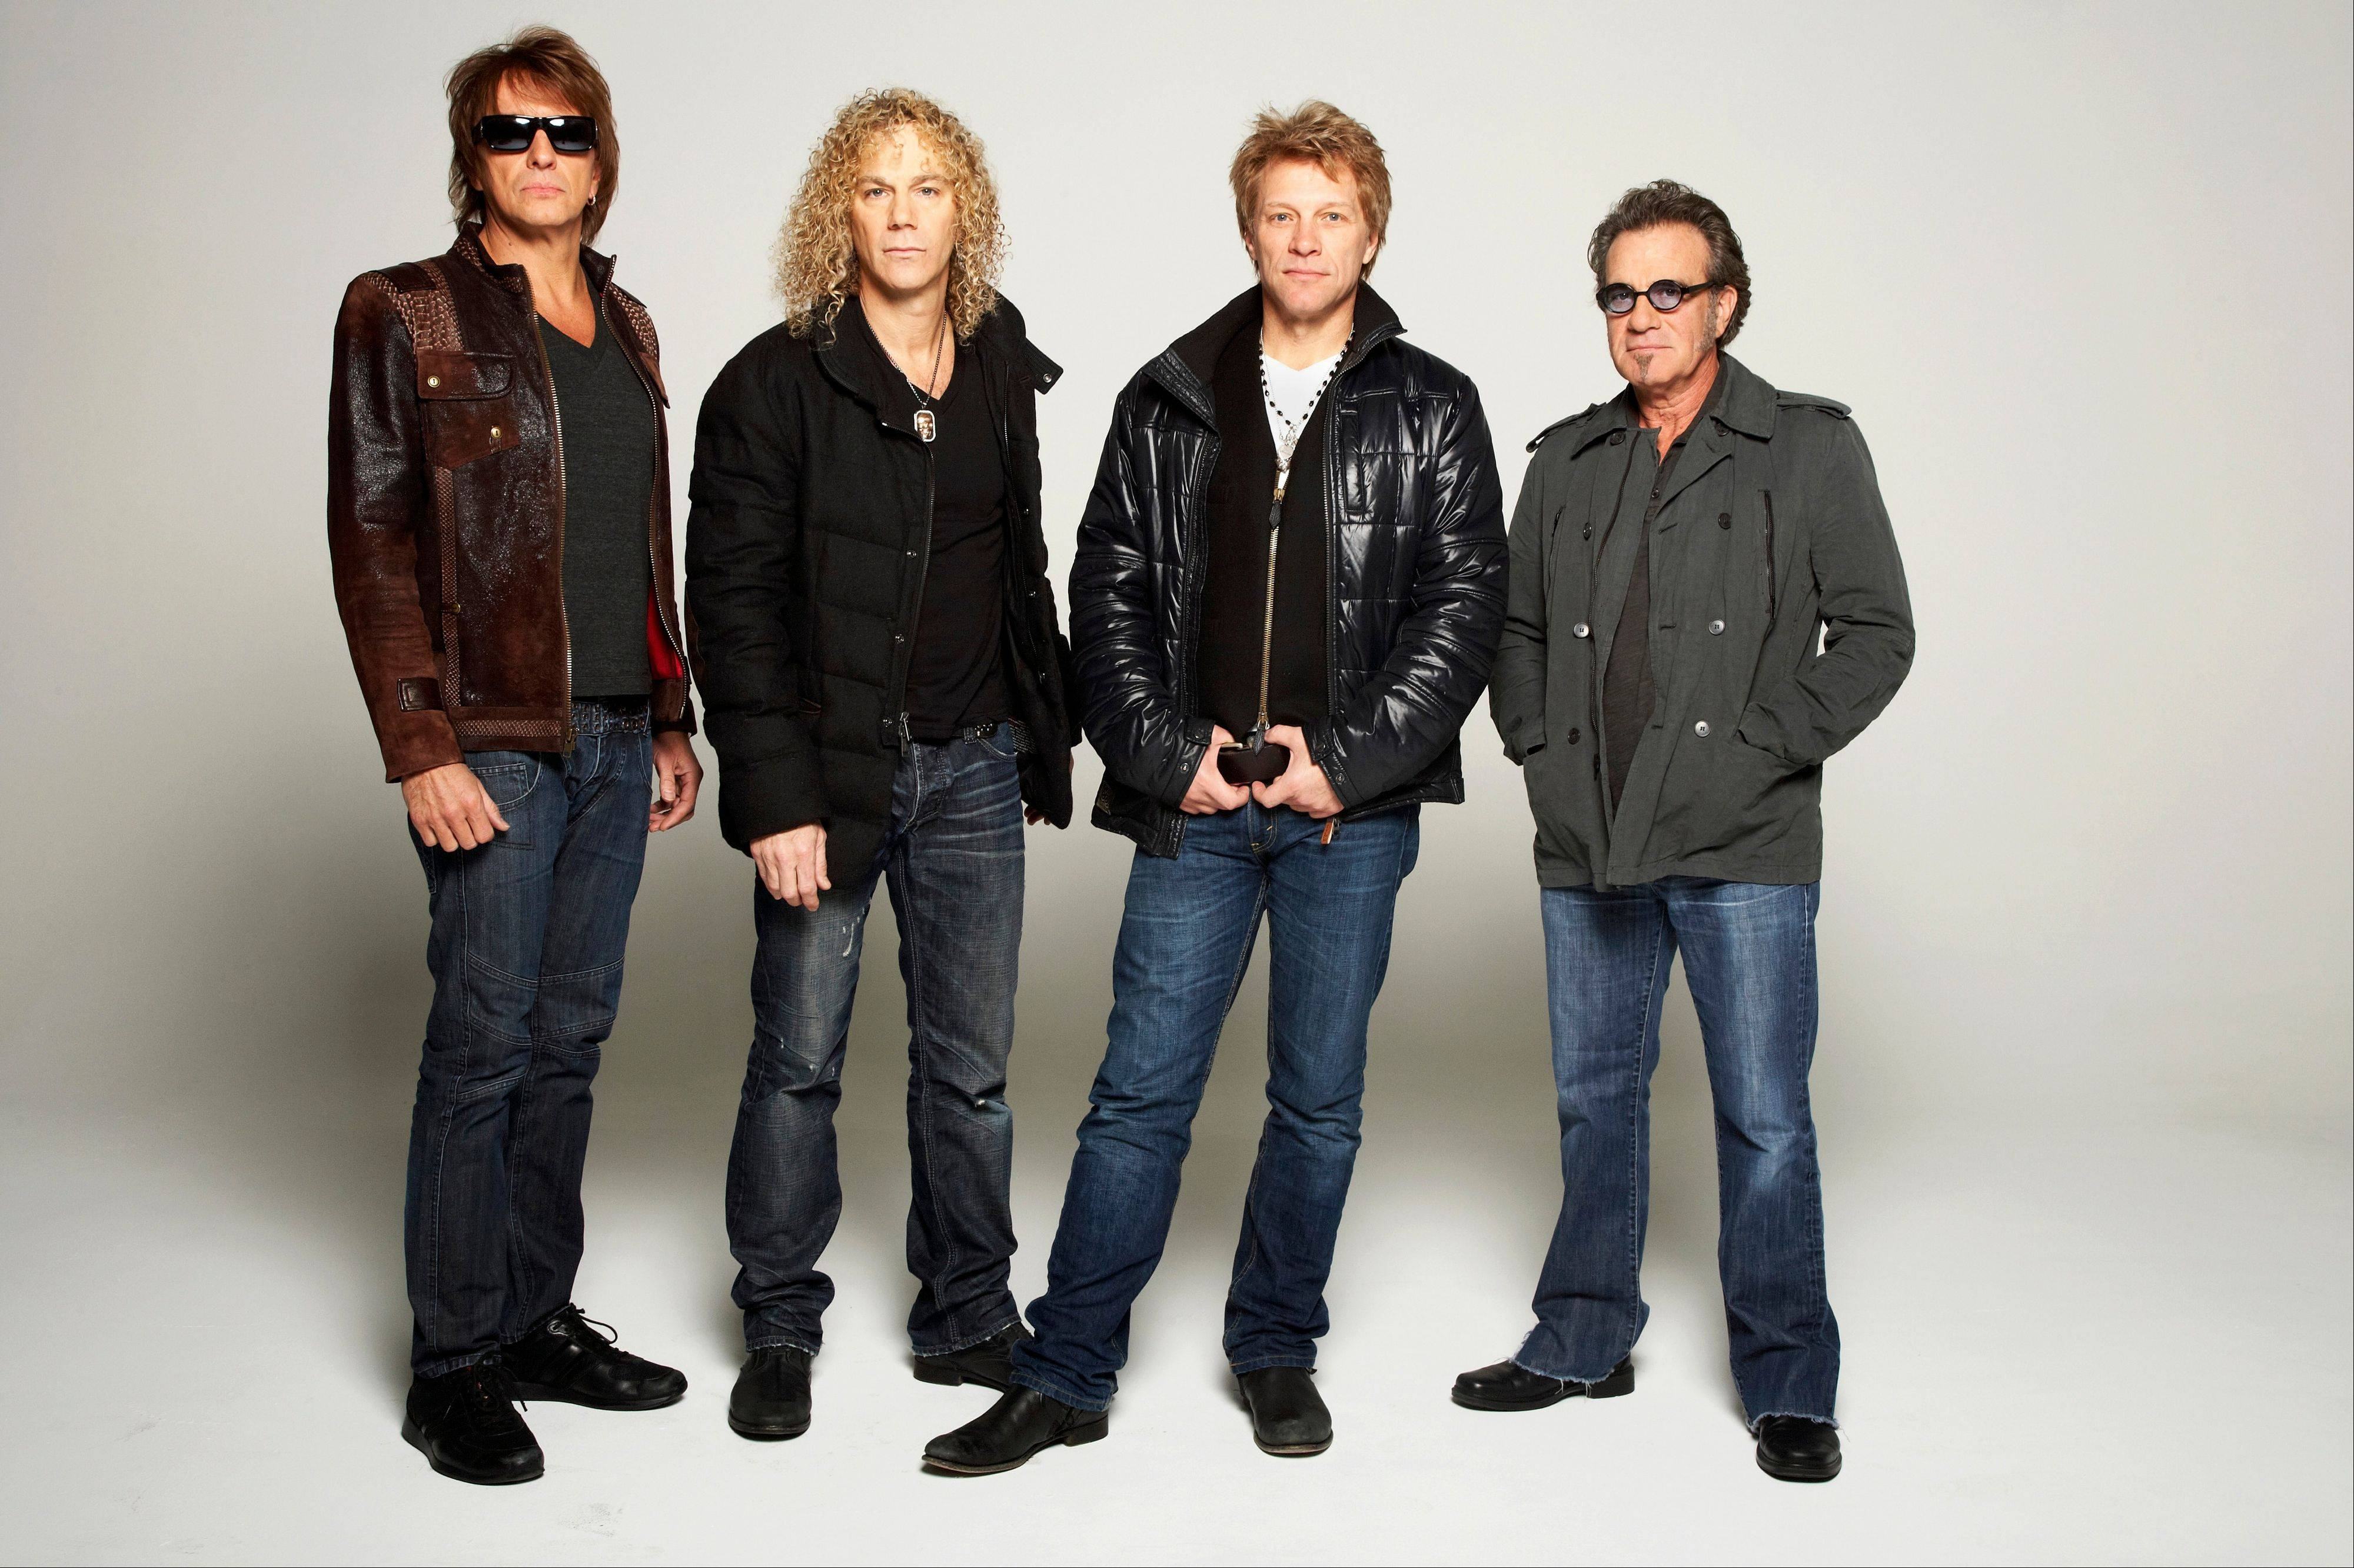 Bon Jovi -- Richie Sambora, left, David Bryan, Jon Bon Jovi and Tico Torres -- postponed their Tuesday show in Mexico City after Torres' emergency appendectomy in Mexico City.